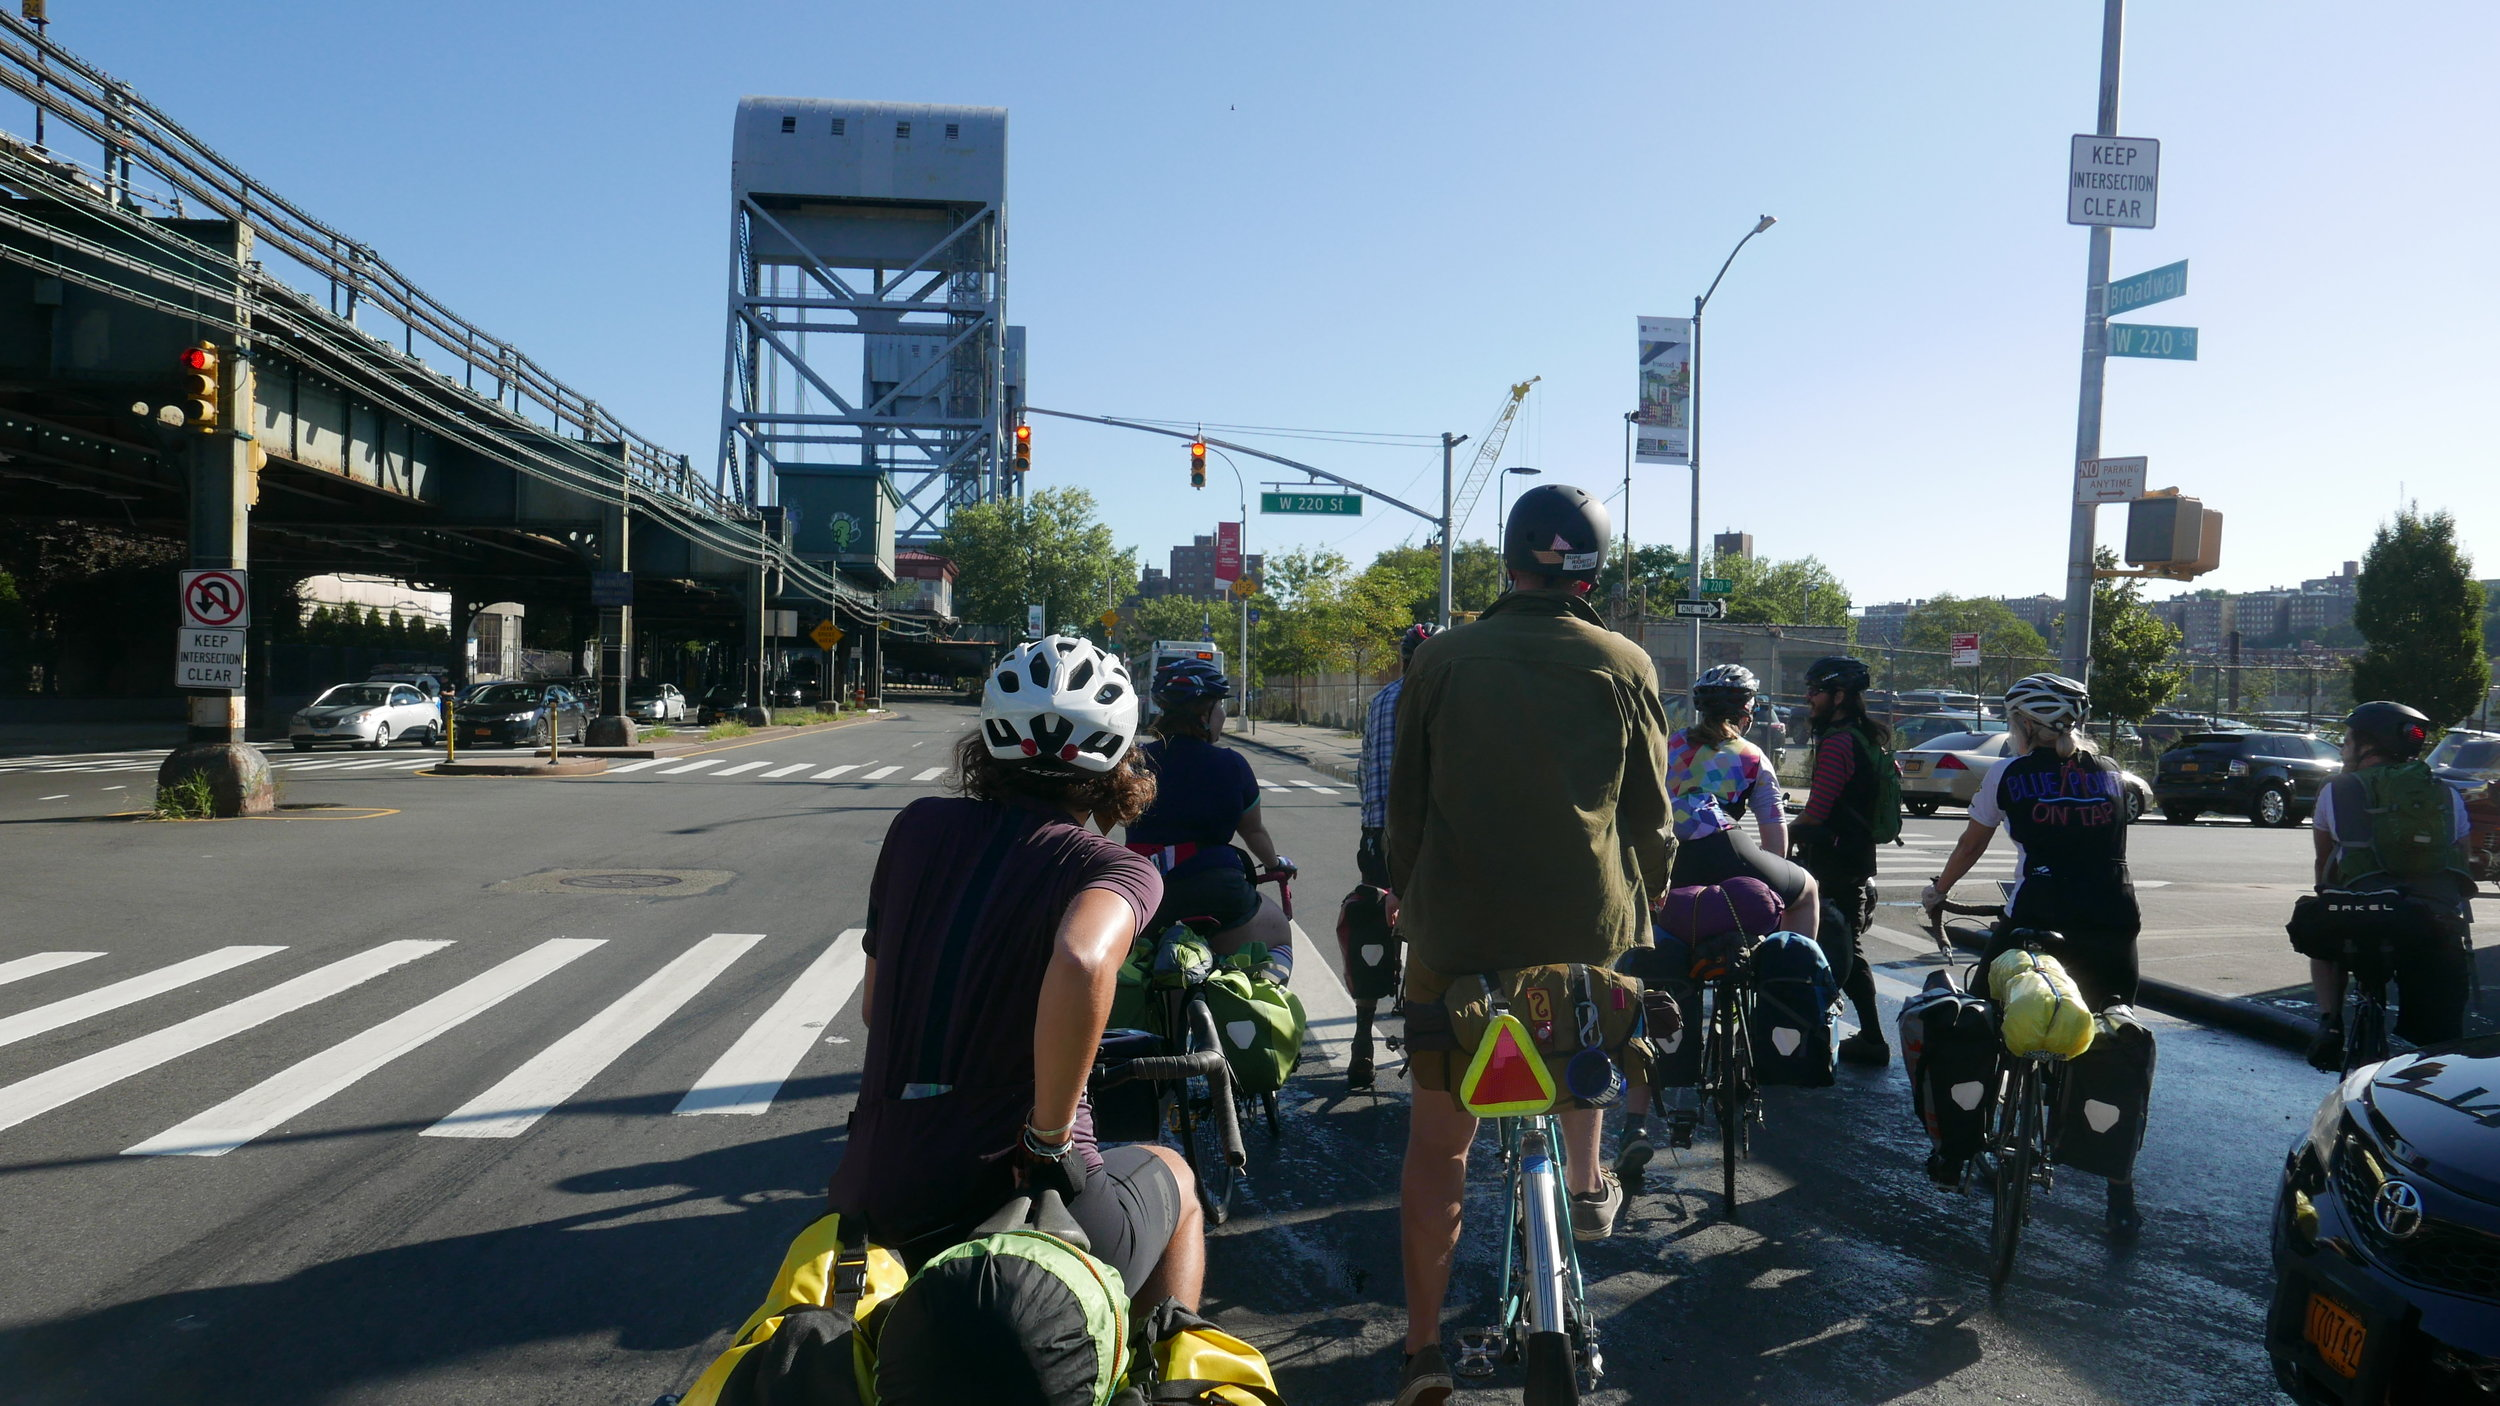 About to cross the Broadway Bridge into the Bronx